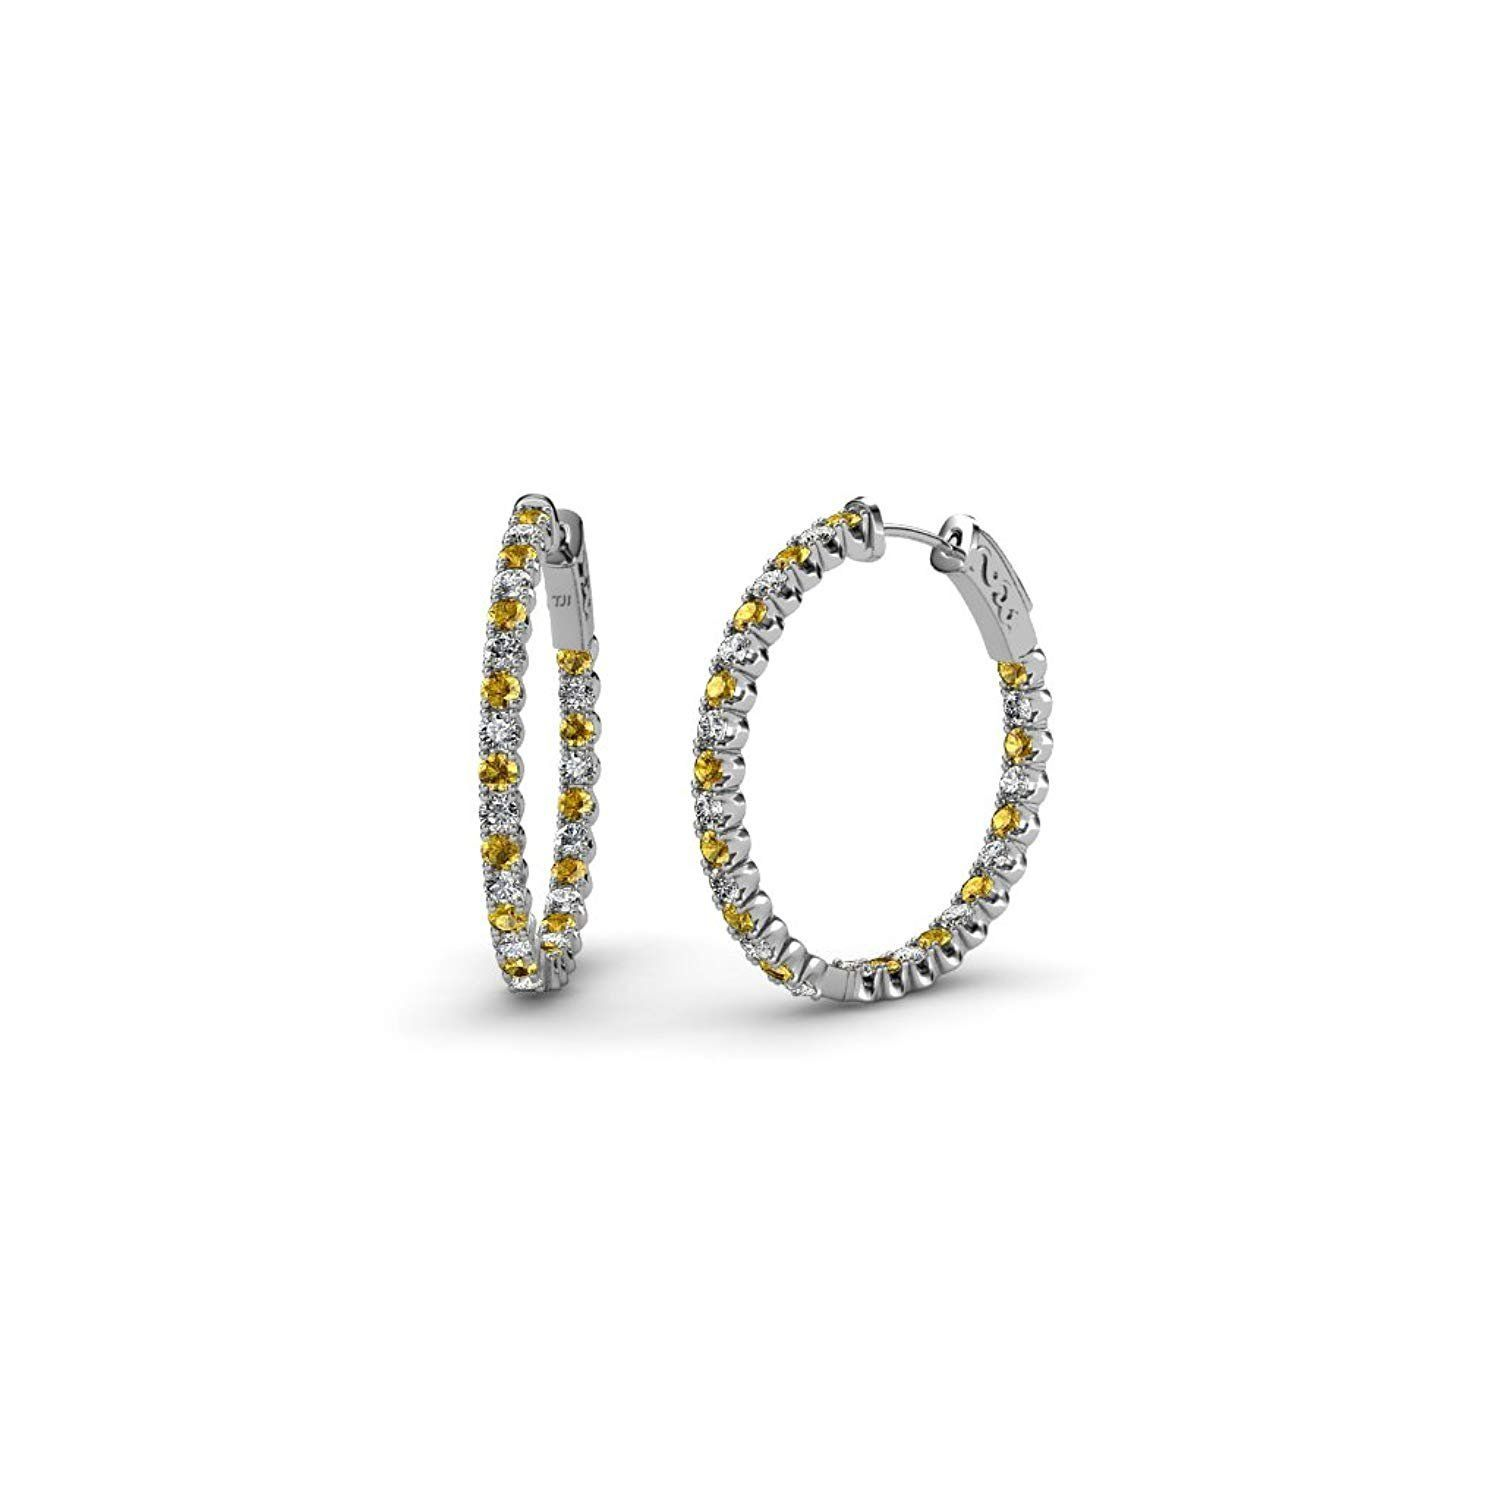 Citrine and Diamond SI2 I1 G H Inside Out Hoop Earrings 1 32 ct